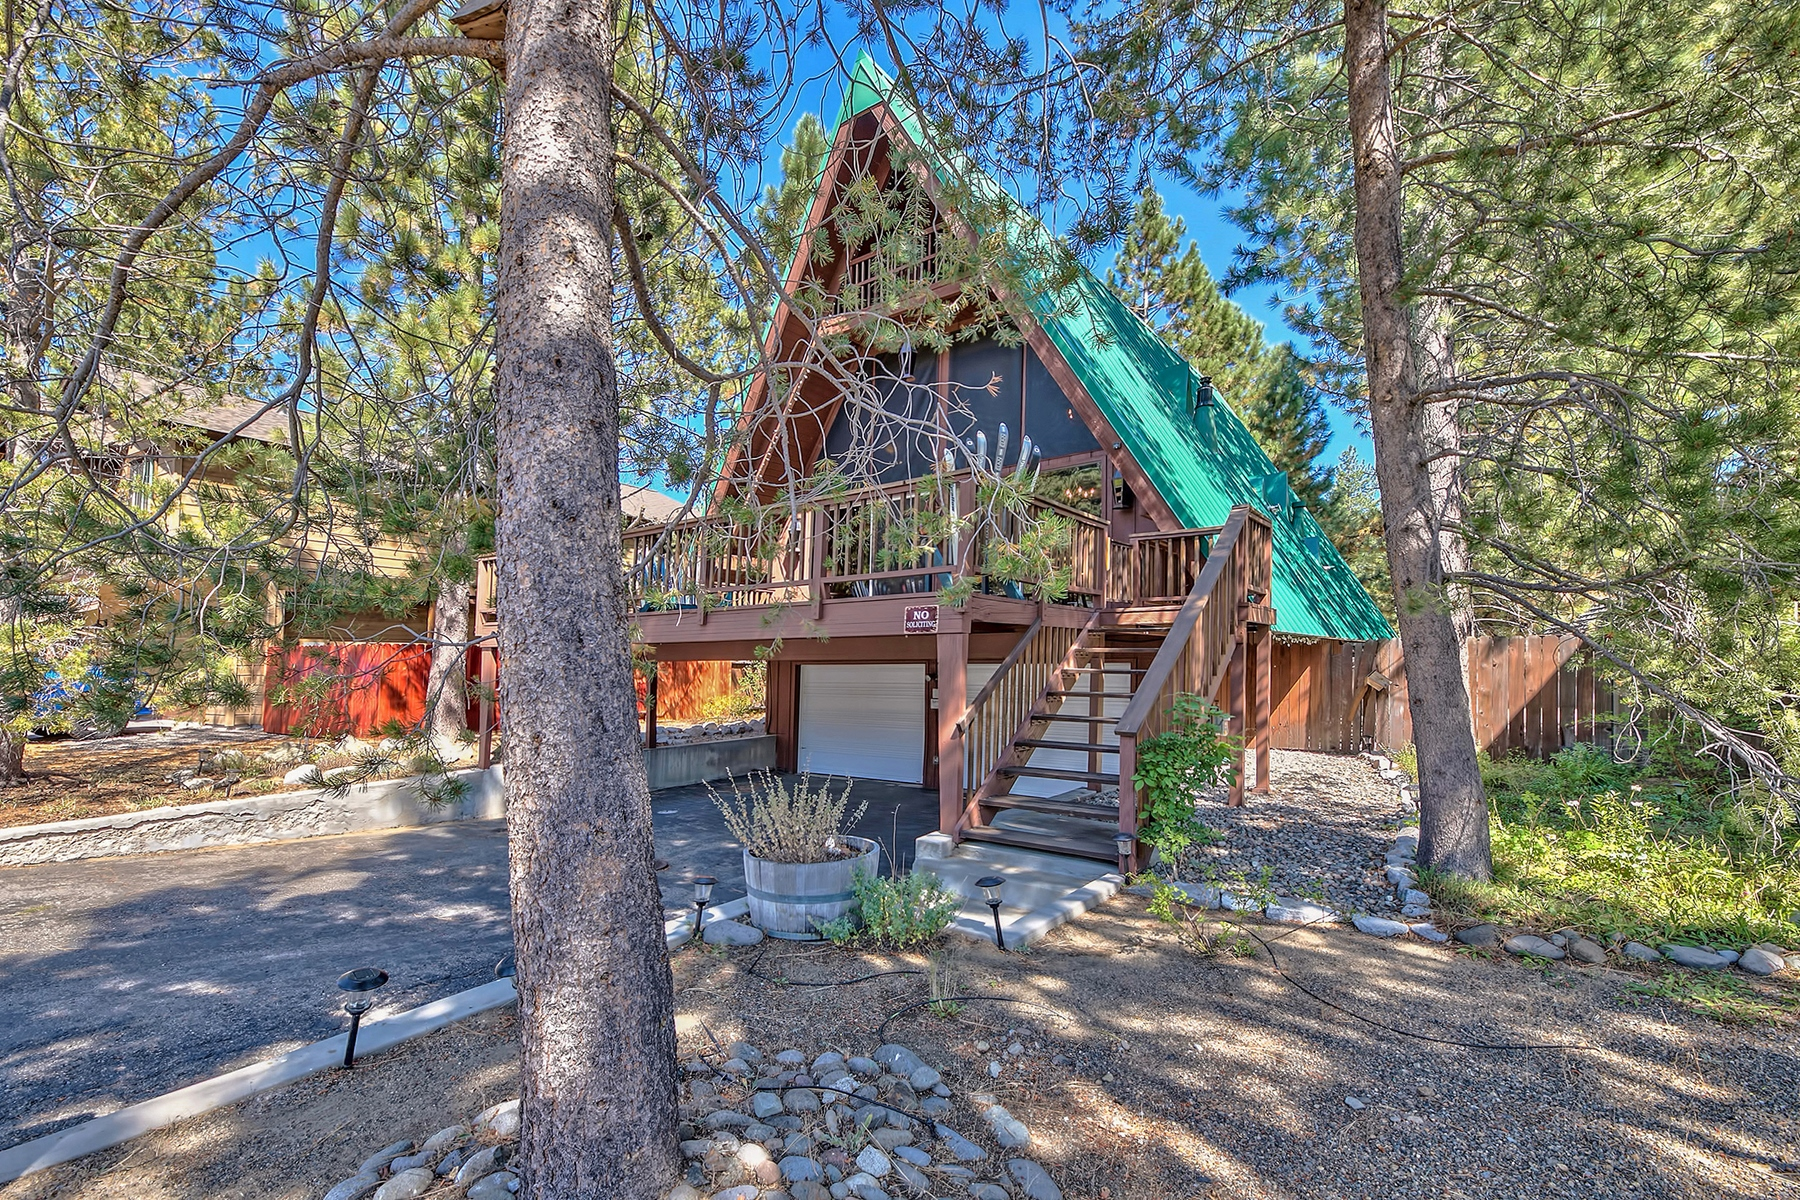 Single Family Home for Active at 923 Creekwood Drive, South Lake Tahoe, CA 96150 923 Creekwood Drive South Lake Tahoe, California 96150 United States